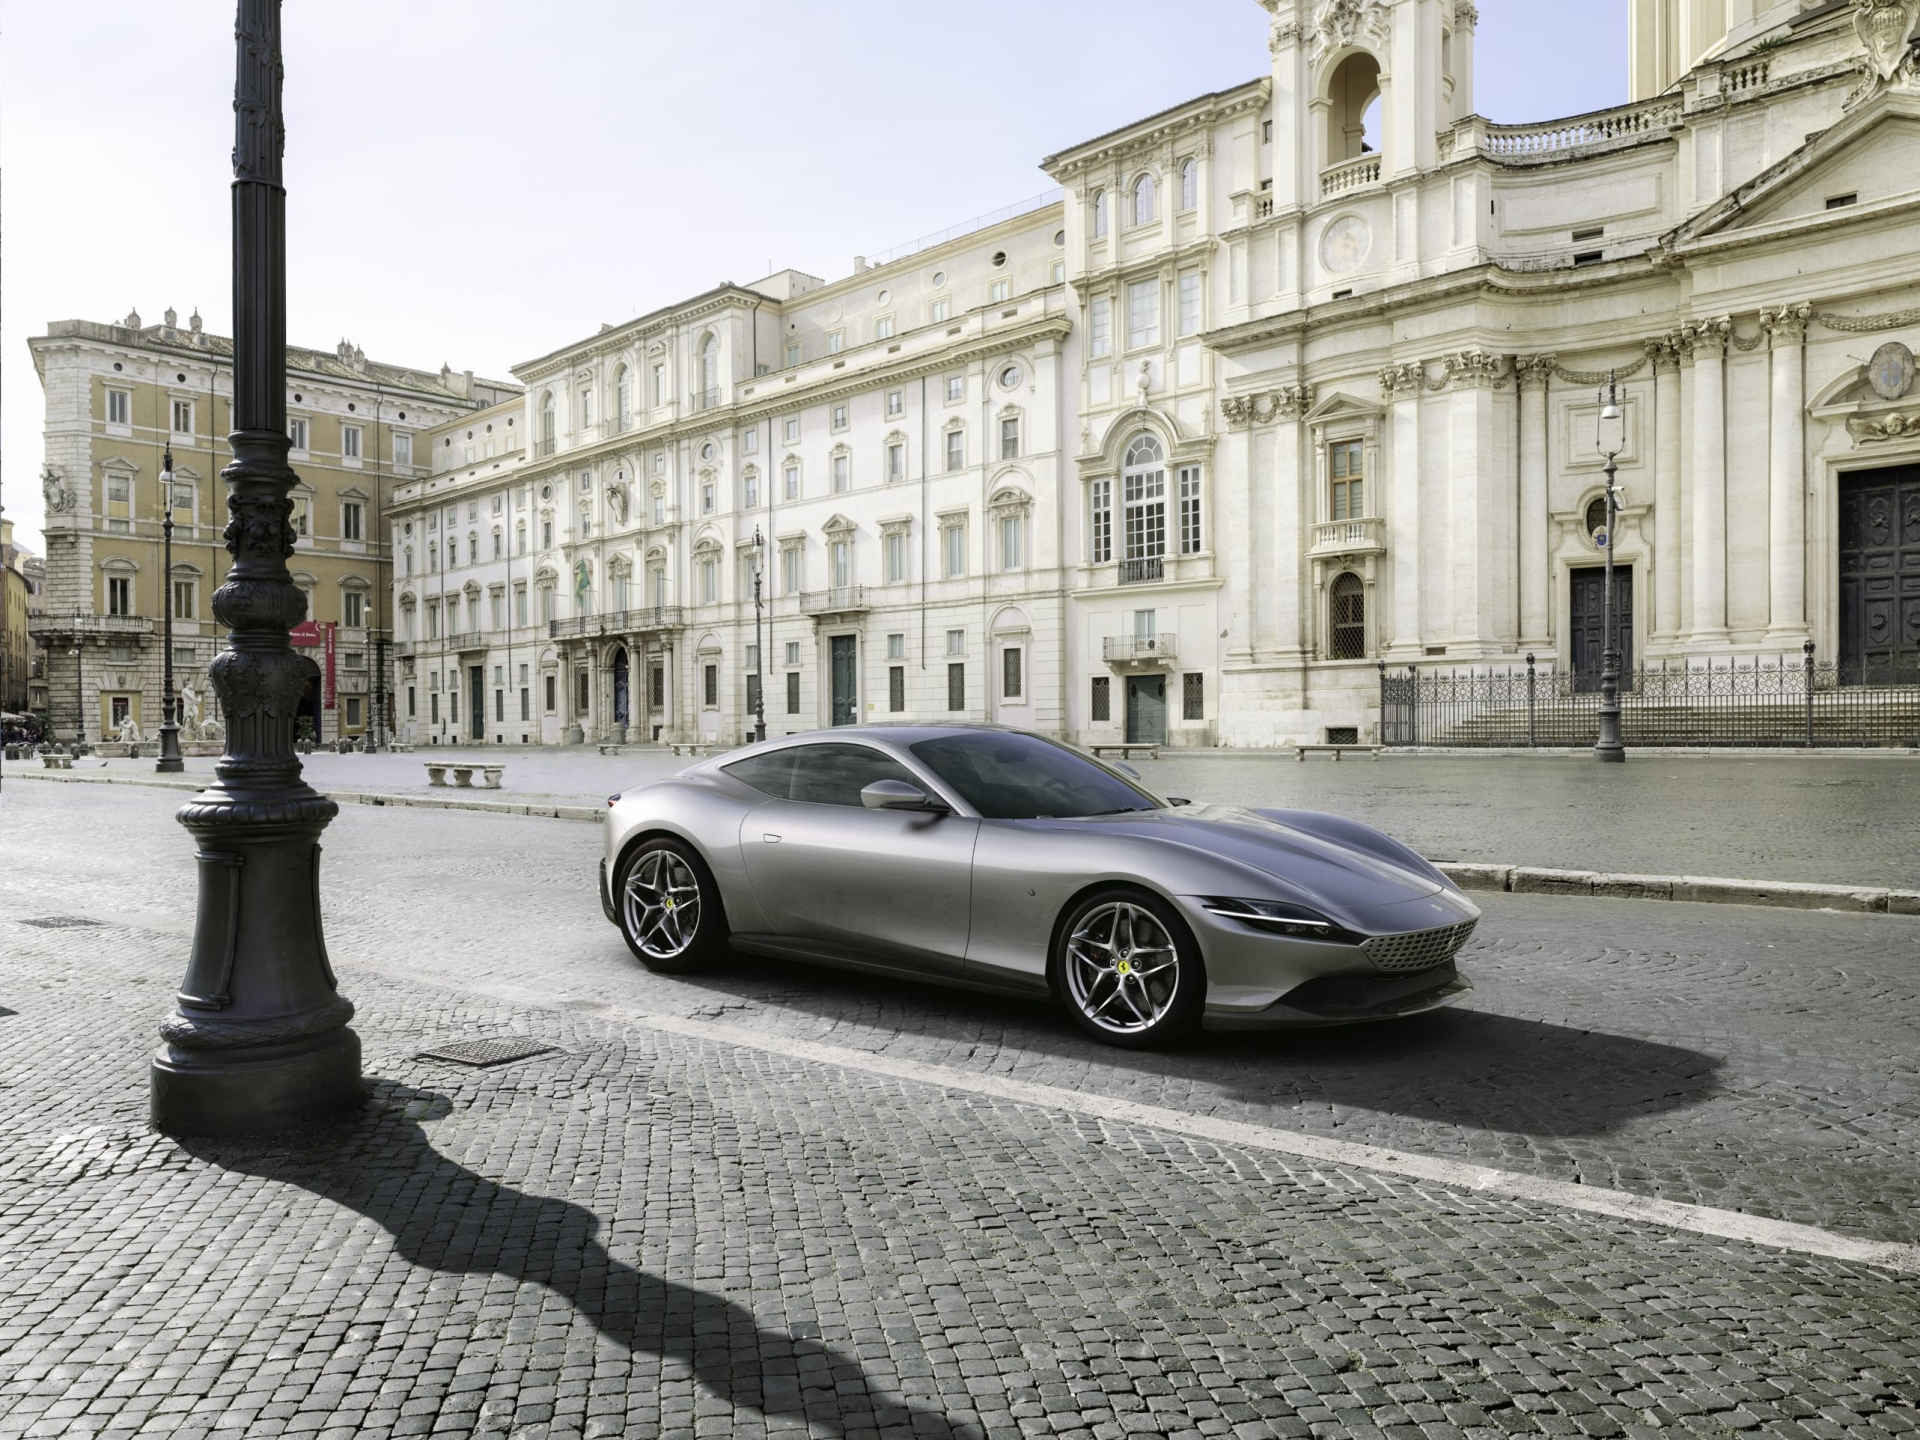 Ferrari unveils the Roma, a powerful mid-engine coupe inspired by Rome